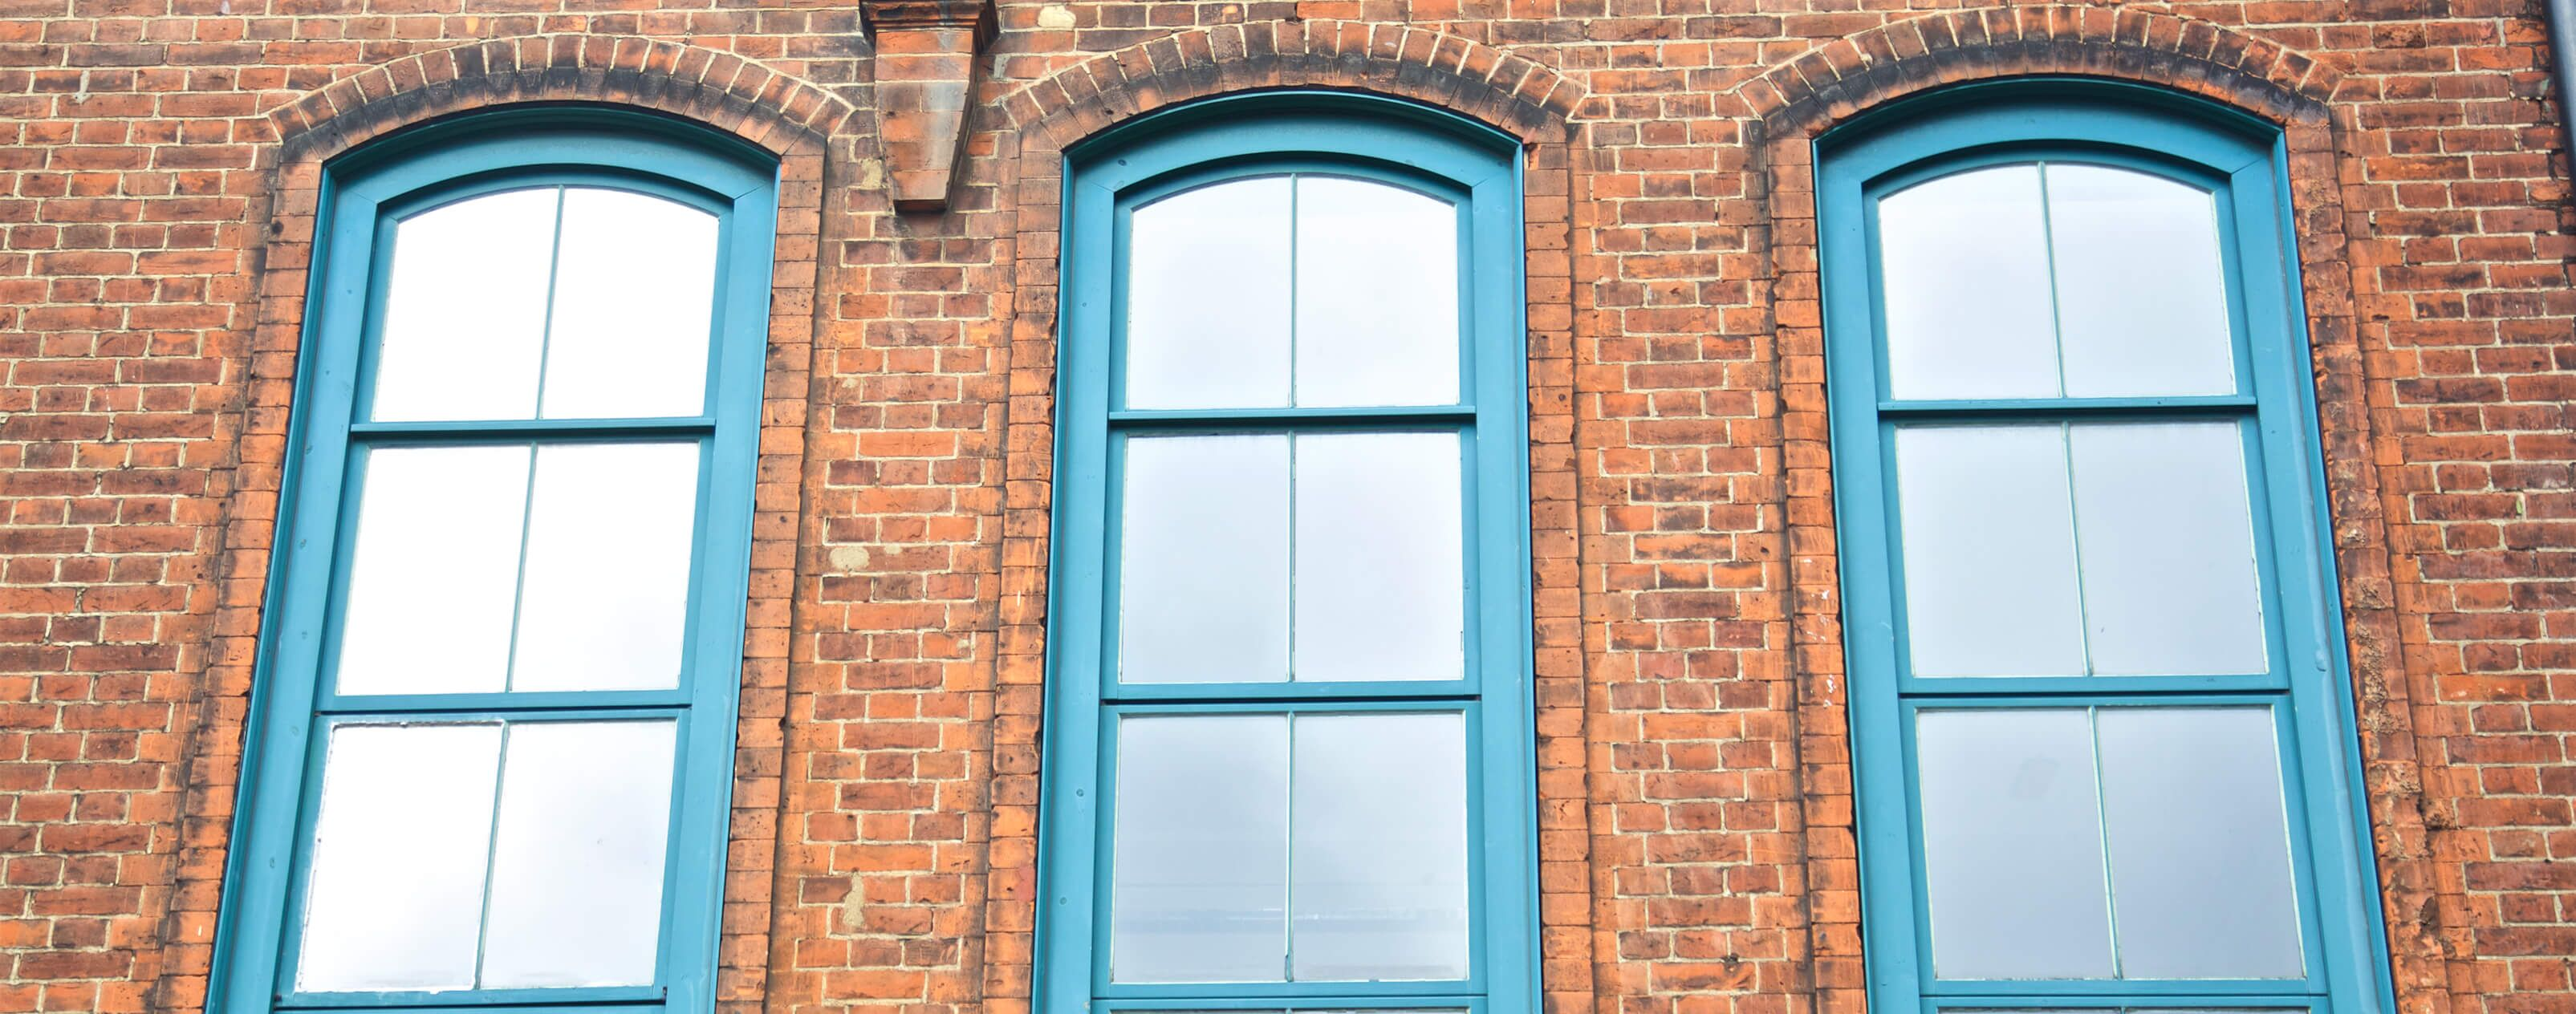 three windows with blue window frames of redbrick house